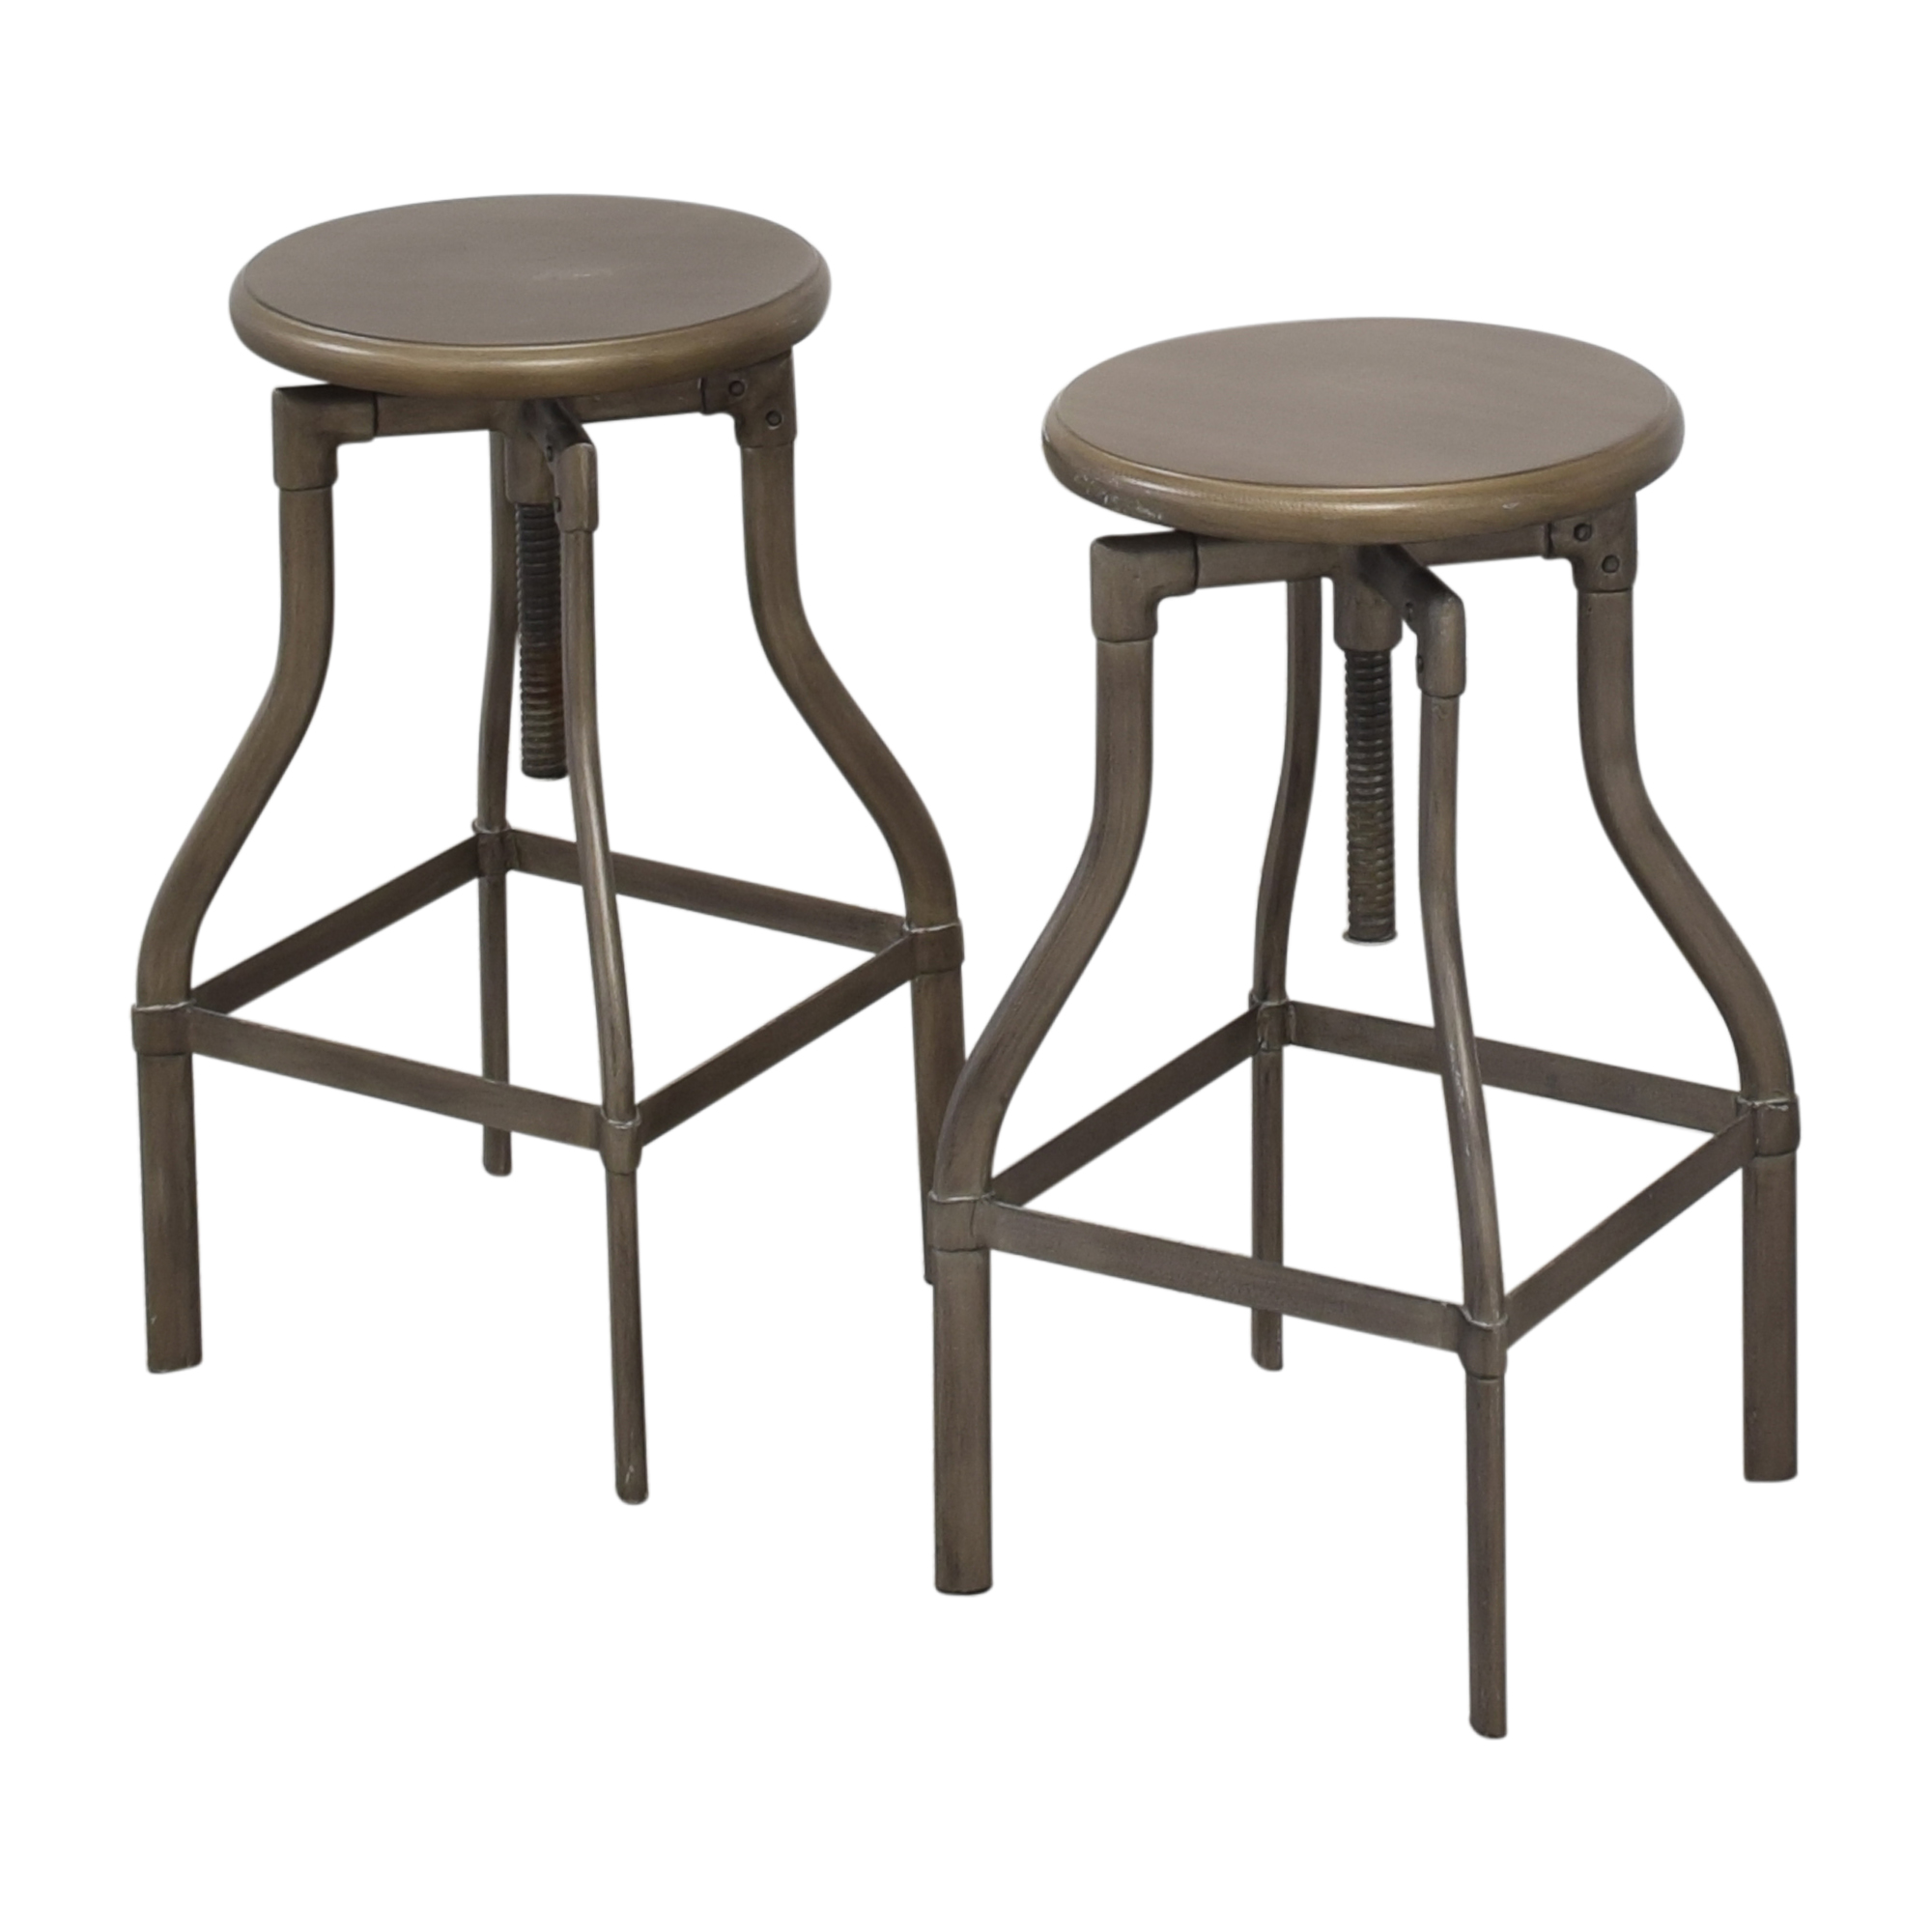 Crate & Barrel Crate & Barrel Turner Adjustable Stools nyc